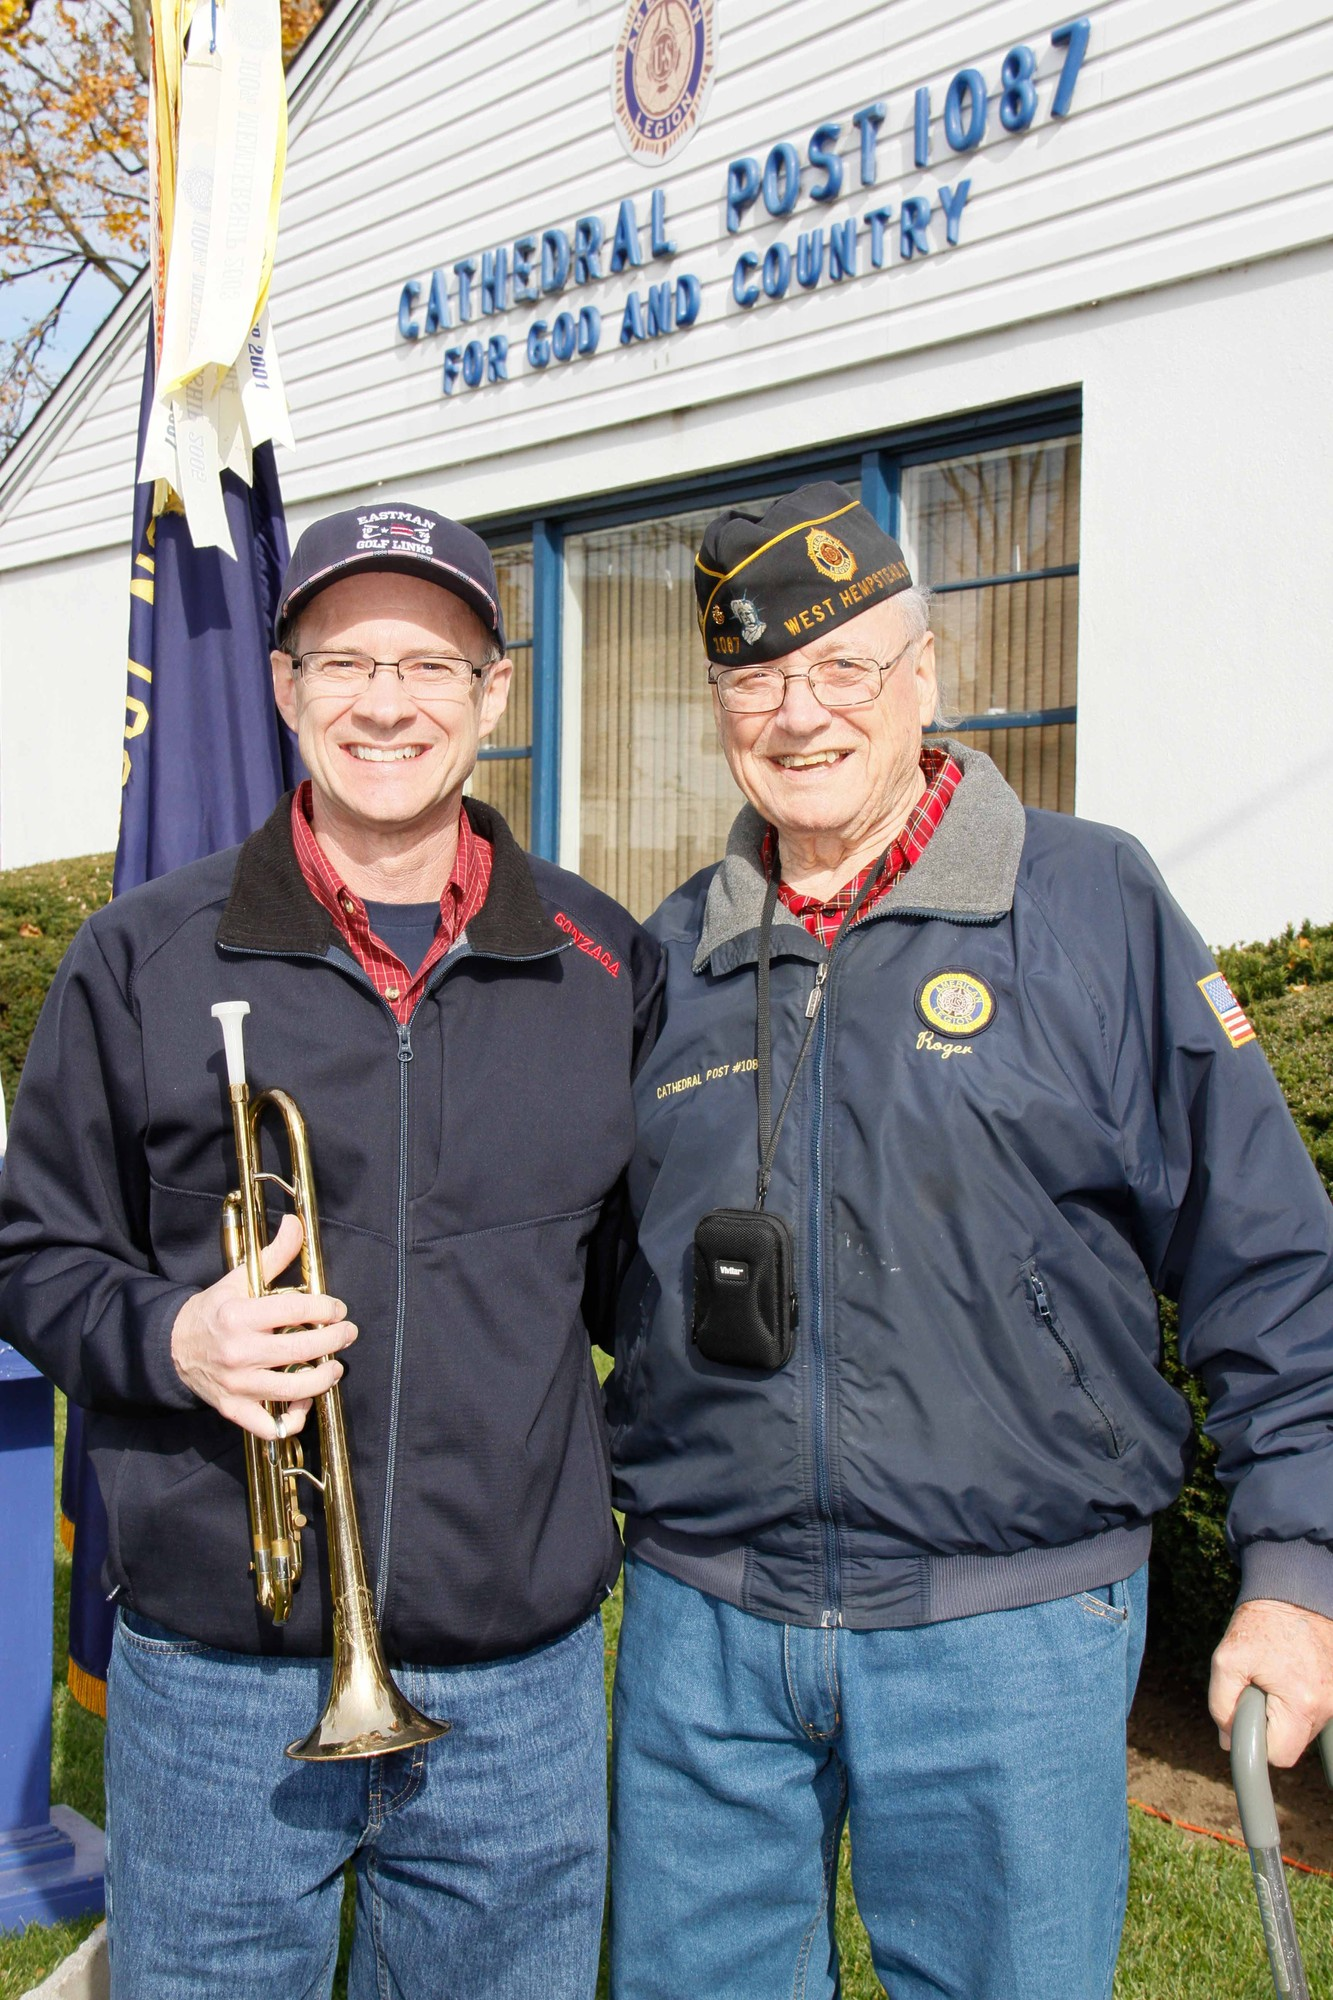 Veteran Rodger Eastman, right, stood by his son Ken, who performed